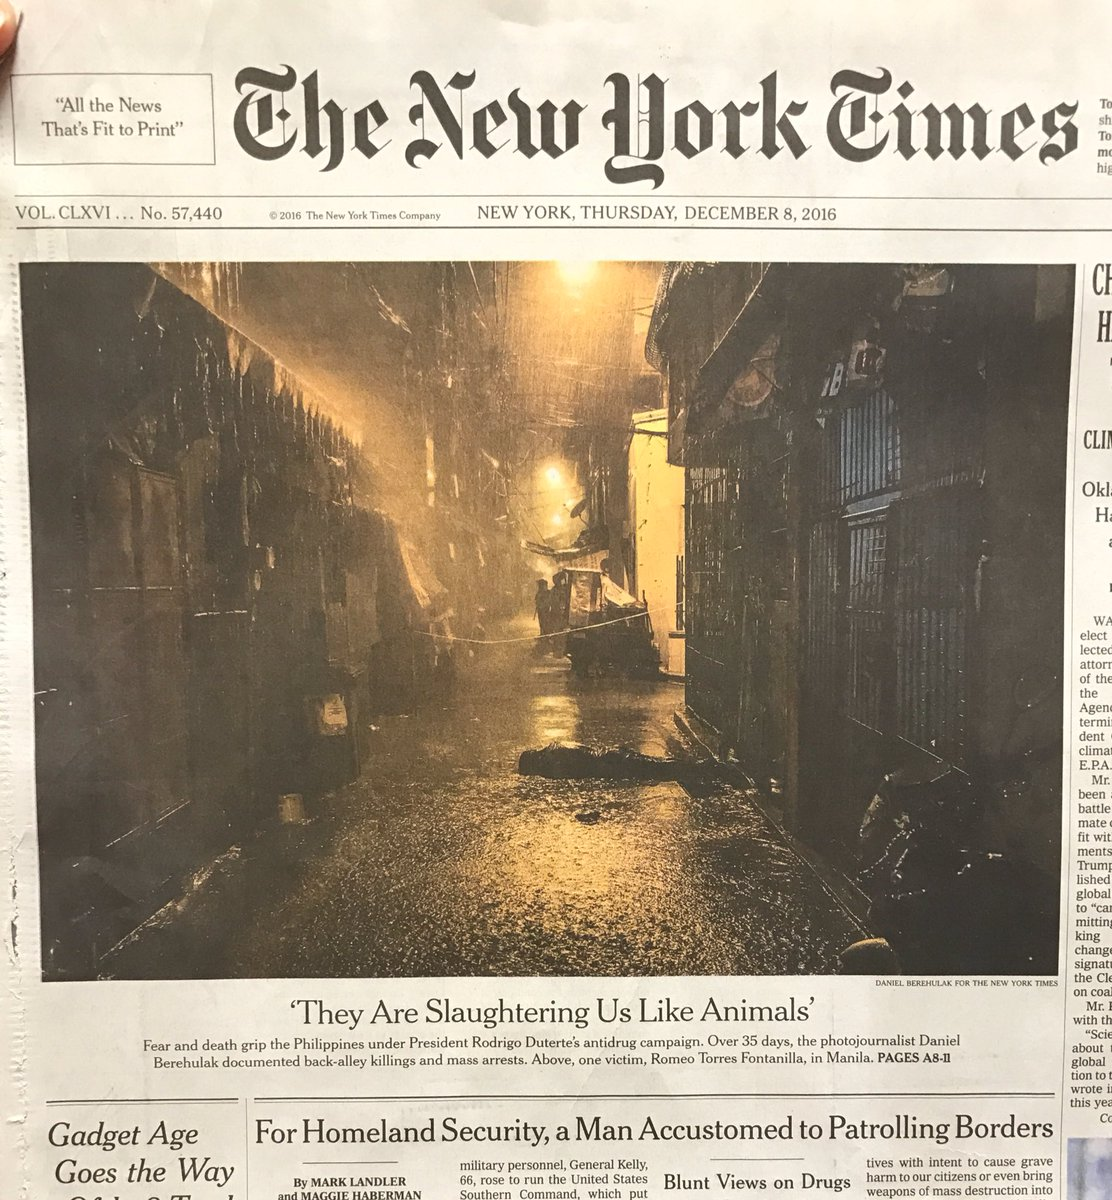 The @nytimes has won the second gold of the day in single day photo series. #SND38 #SND38medal https://t.co/Aymwa5vMg4